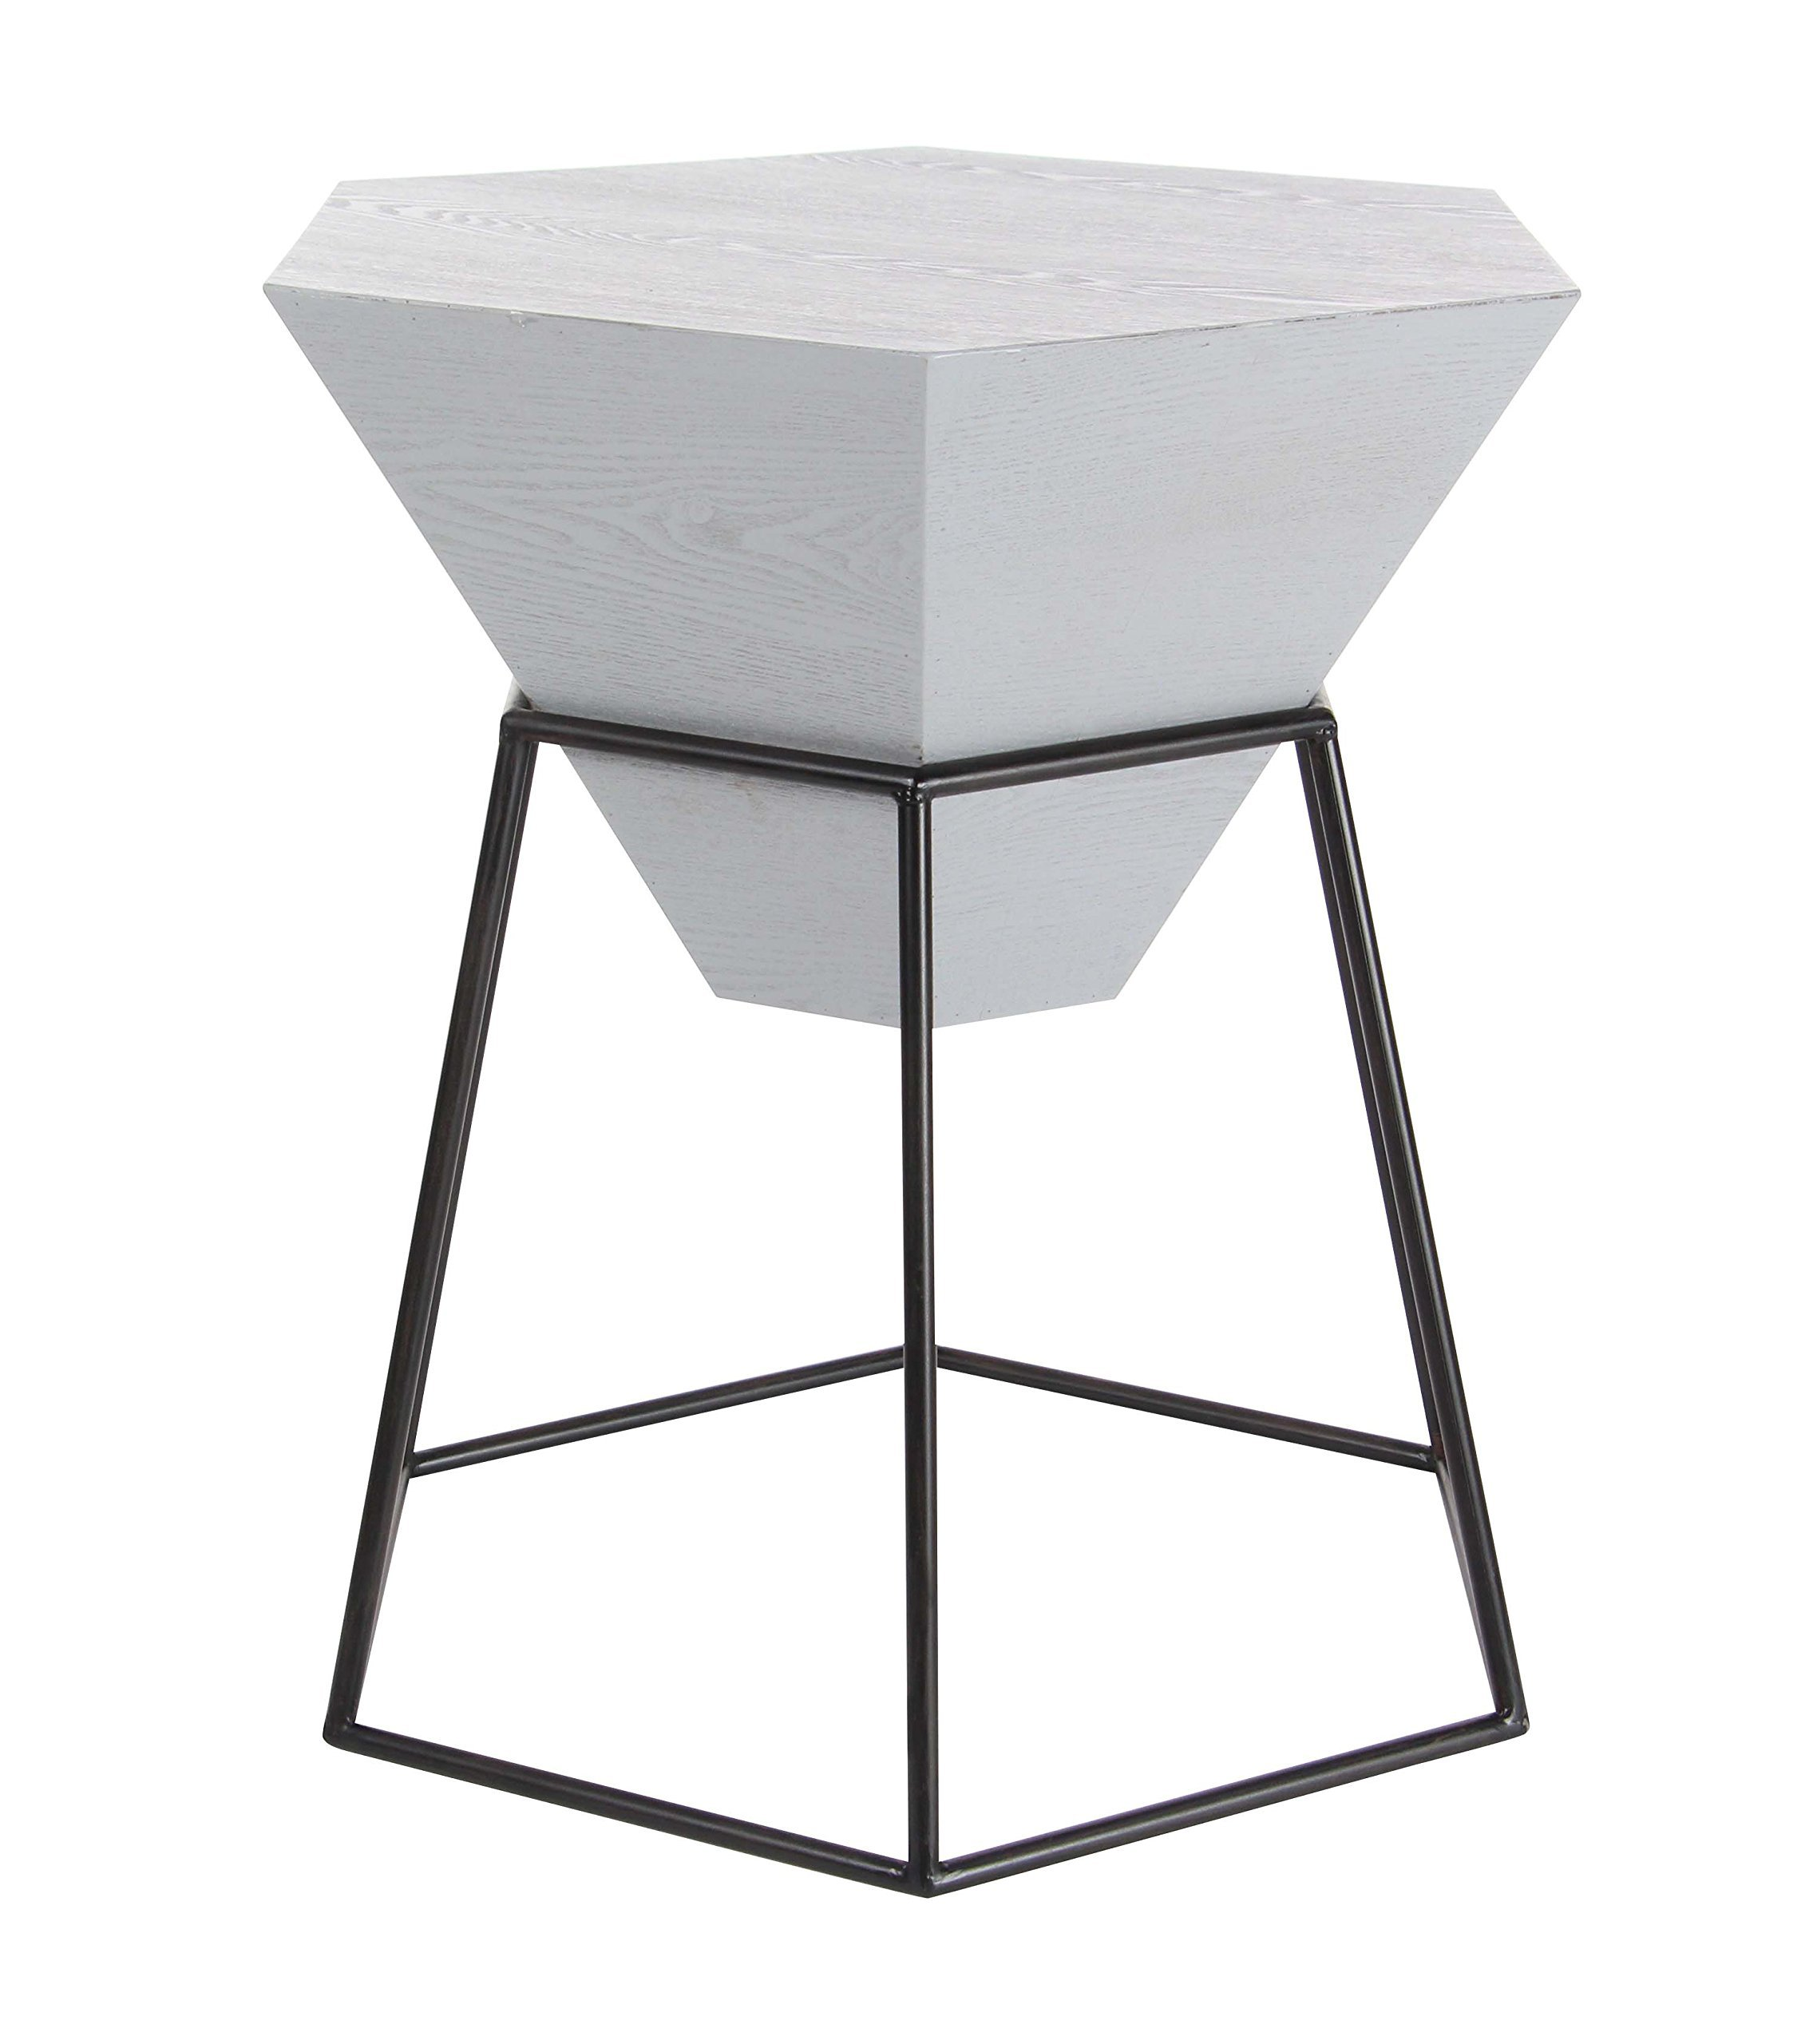 "Deco 79 85233 22"" x 24"" Wood and Metal Hexagon Accent Table Gray/Black - -Dimensions: 22x22x24 -Dimensions 2: base 22x22 -Theme: Modern Reflection - living-room-furniture, living-room, console-tables - 81tGYTjaRNL -"